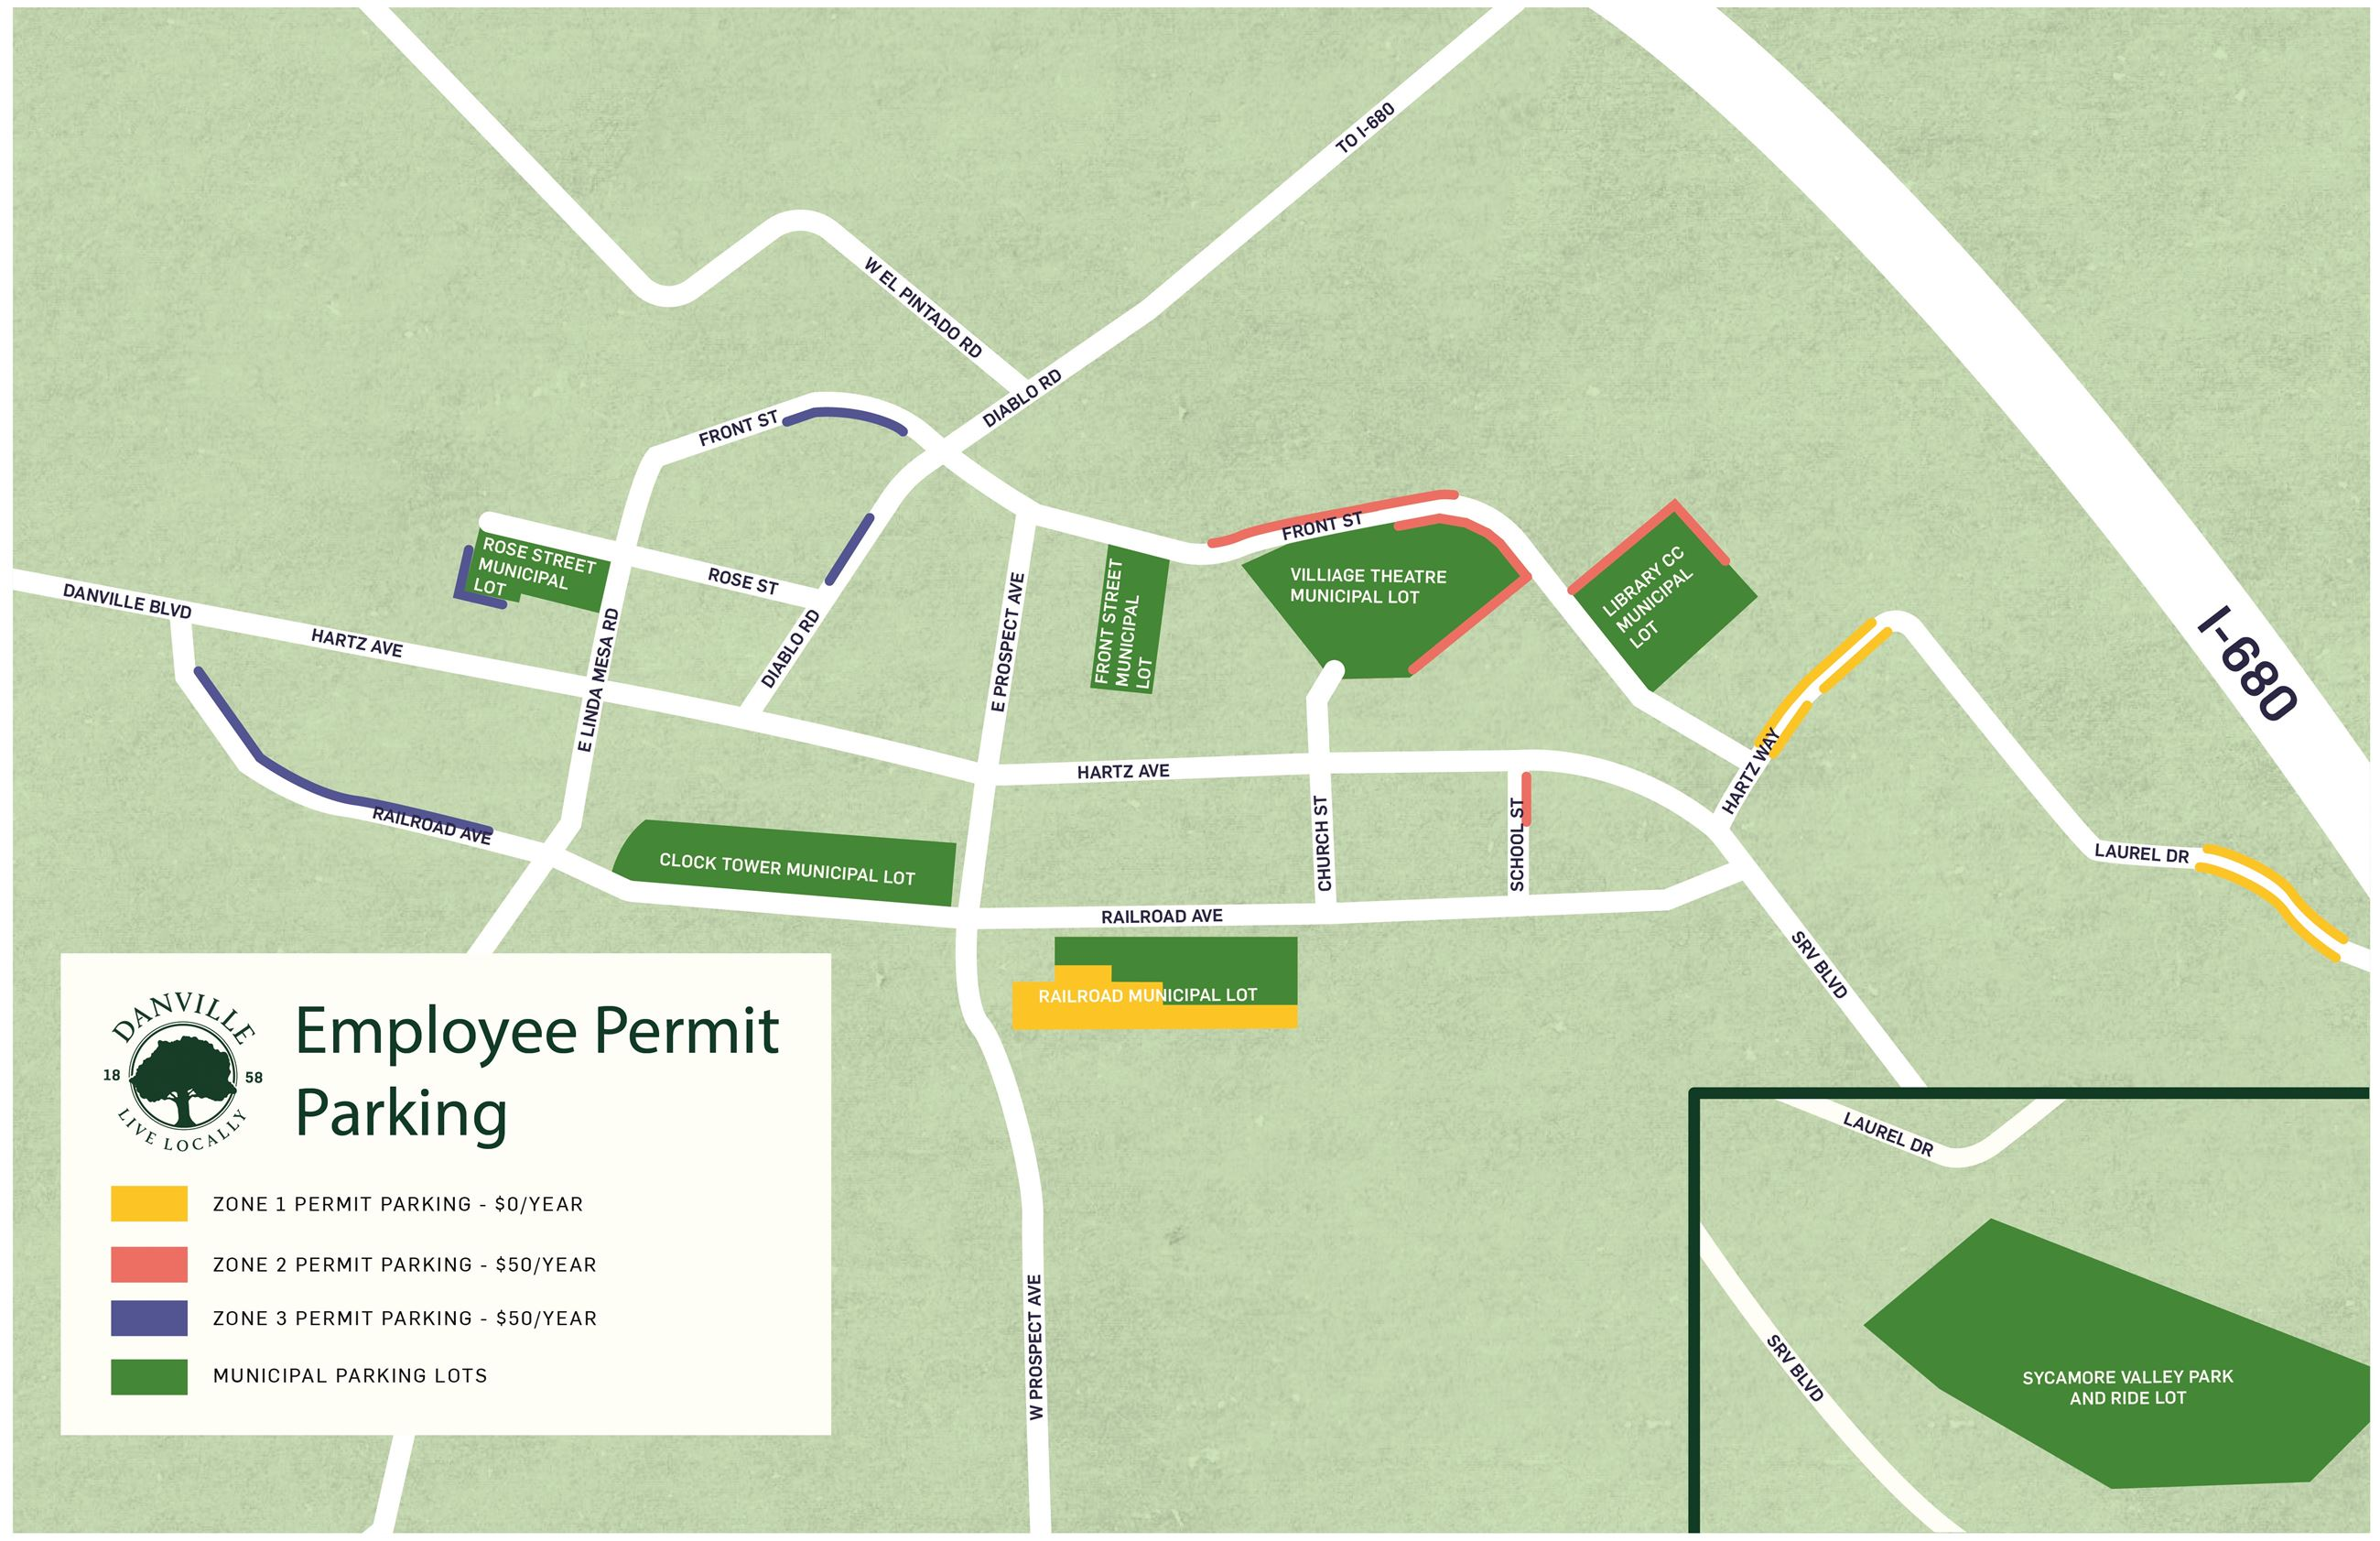 Downtown Employee Permit Parking Map 2020